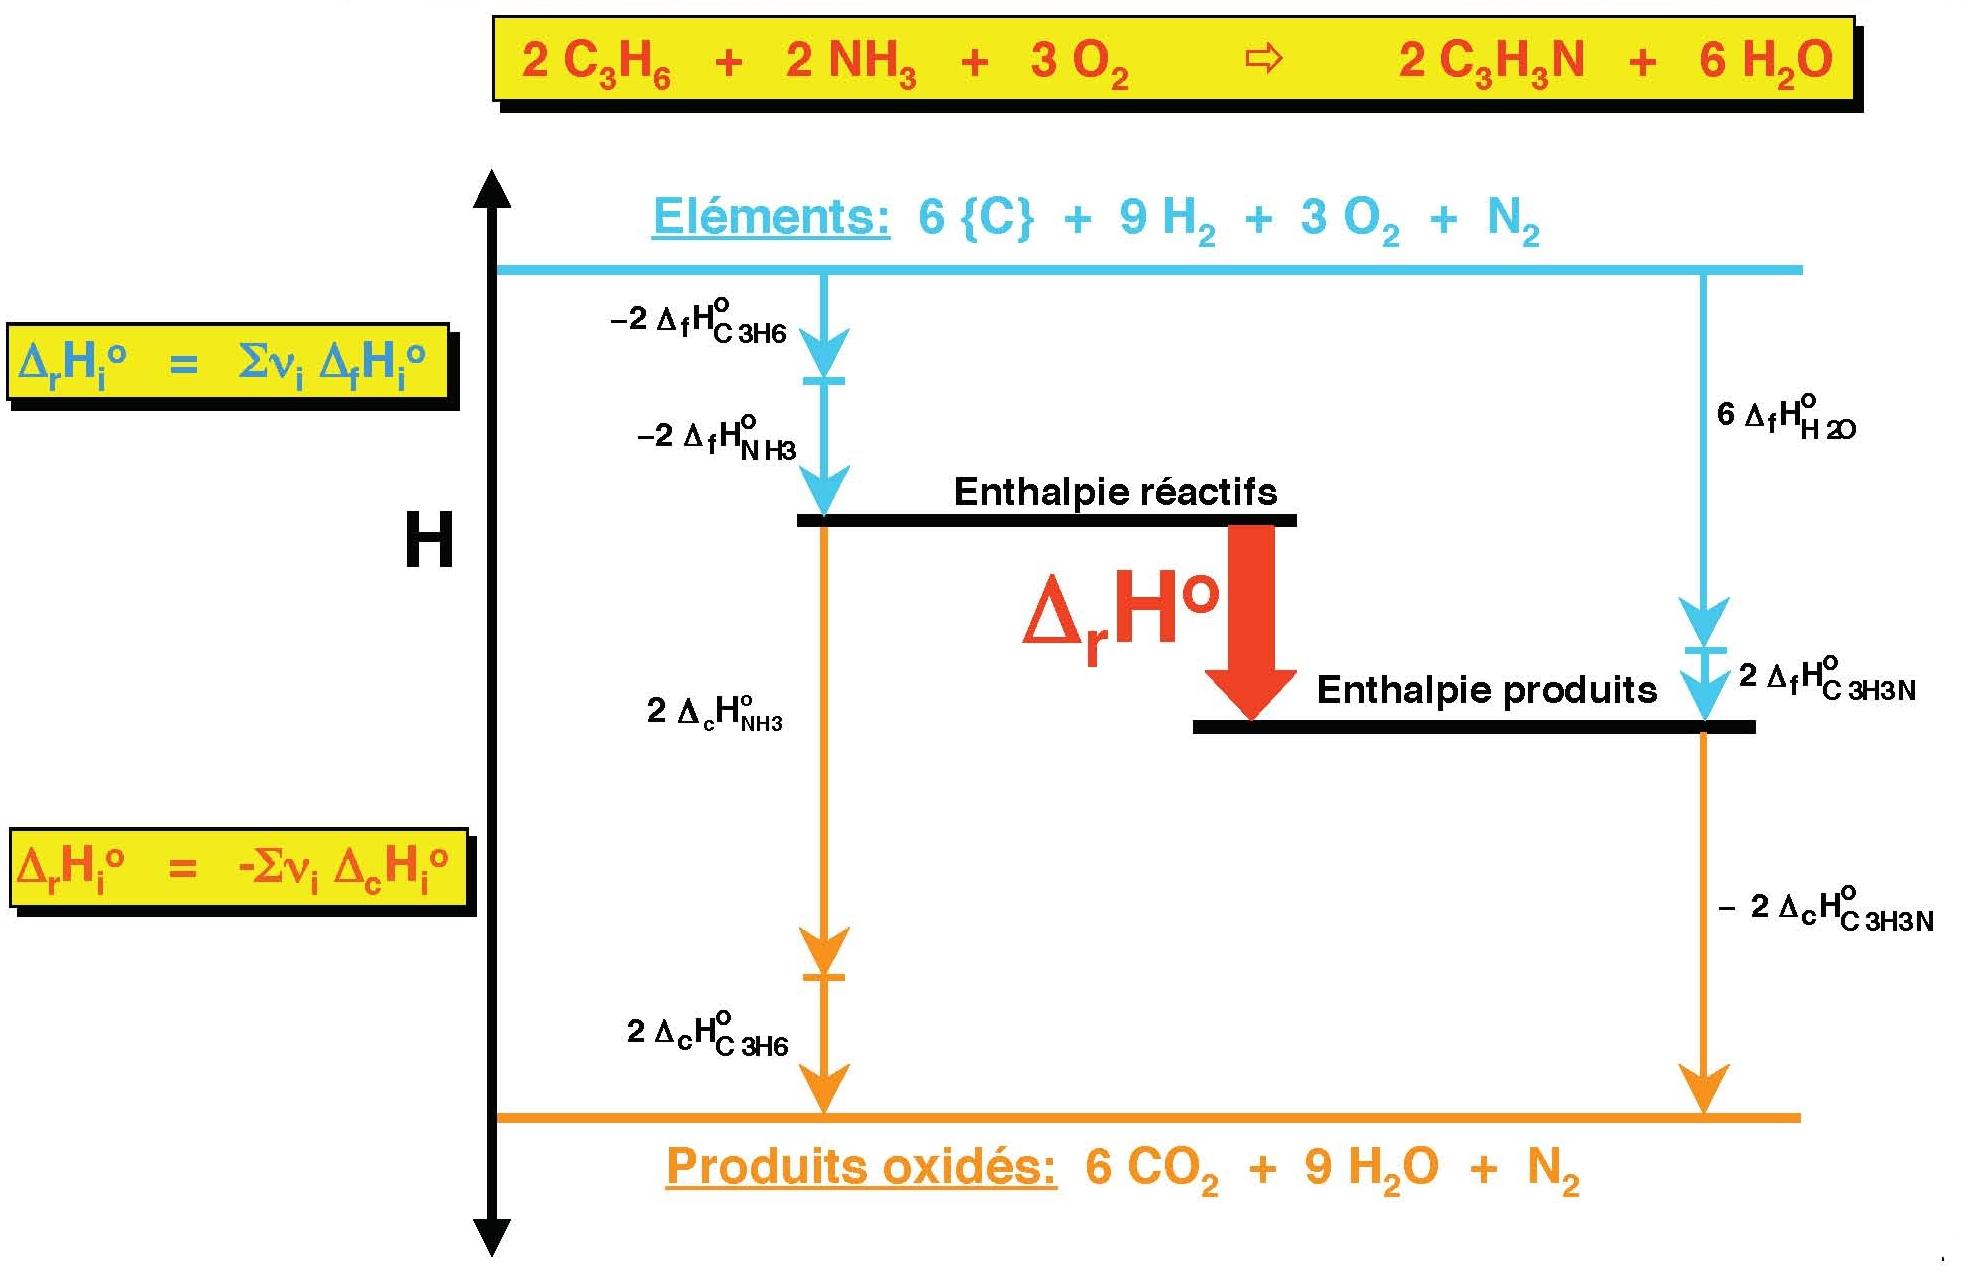 a comparison between the enthalpy of formation of mgo